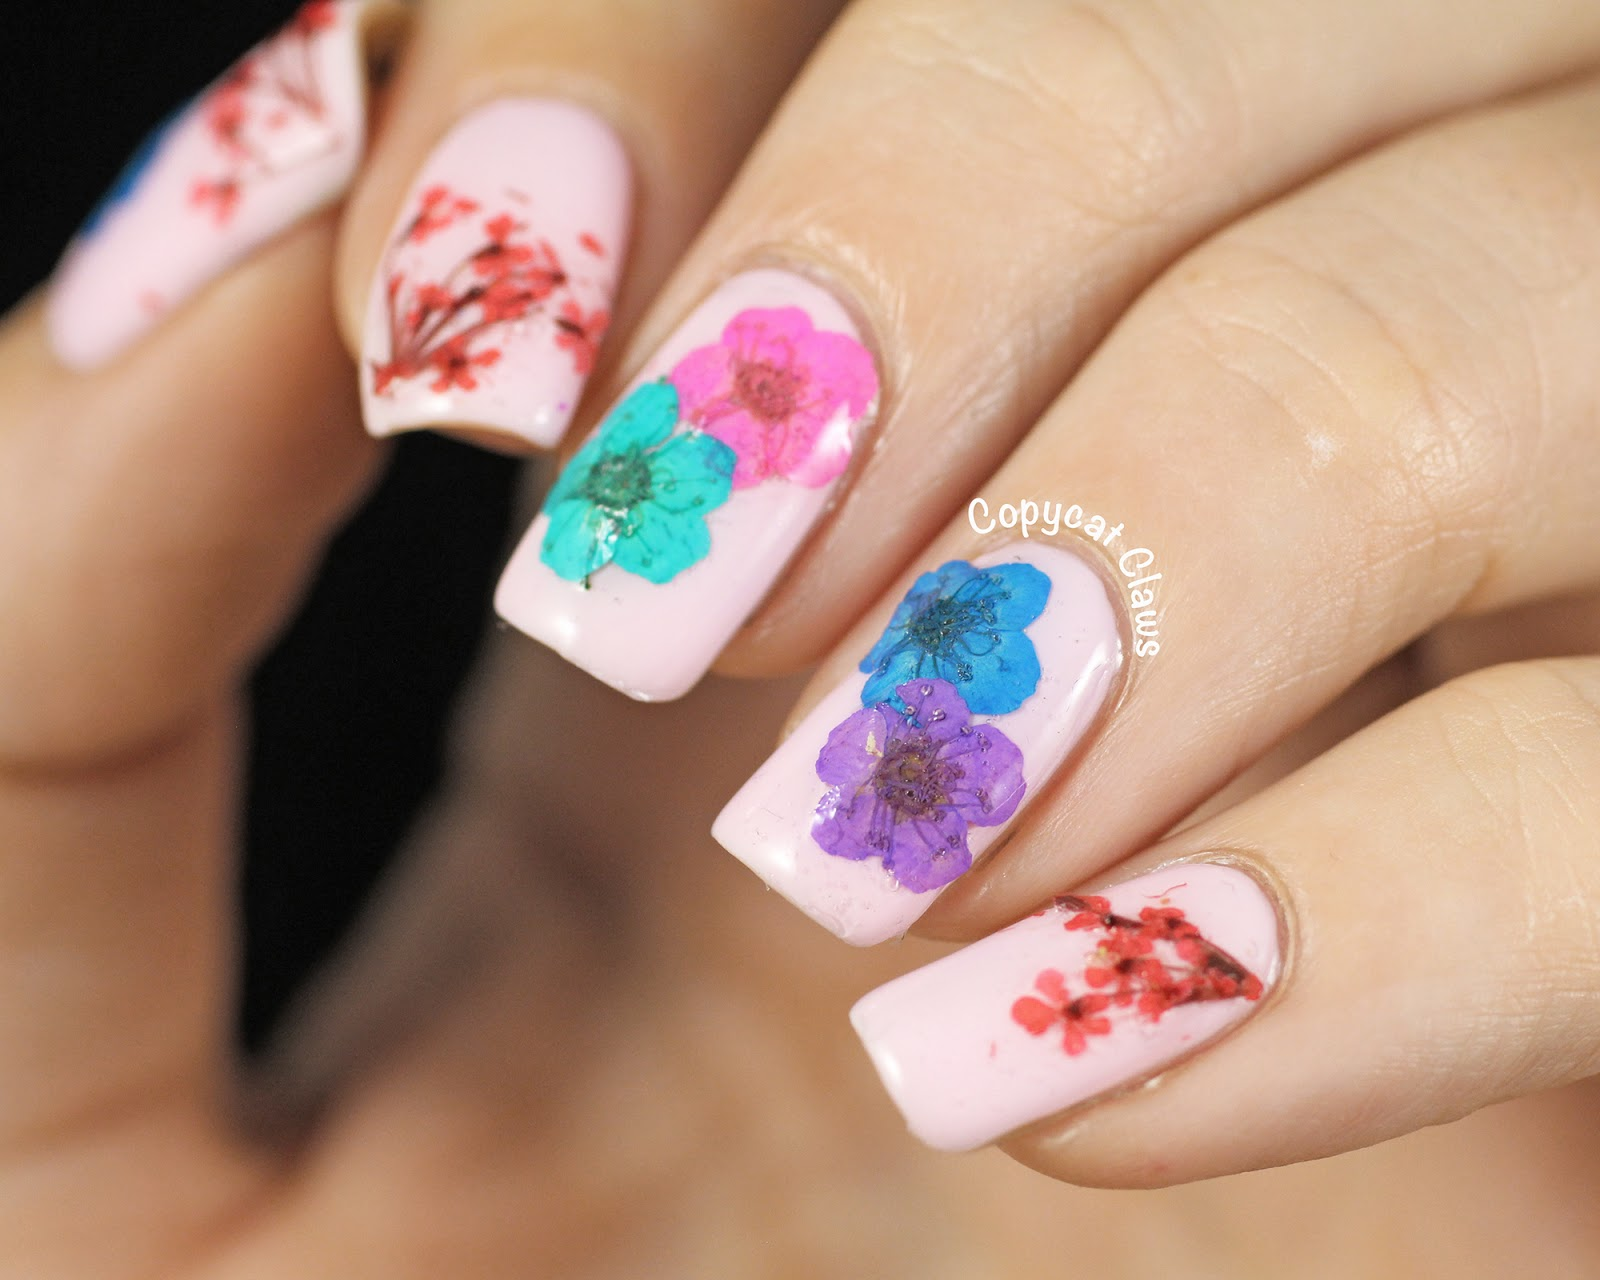 Copycat claws real dried flower nail art real dried flower nail art prinsesfo Gallery